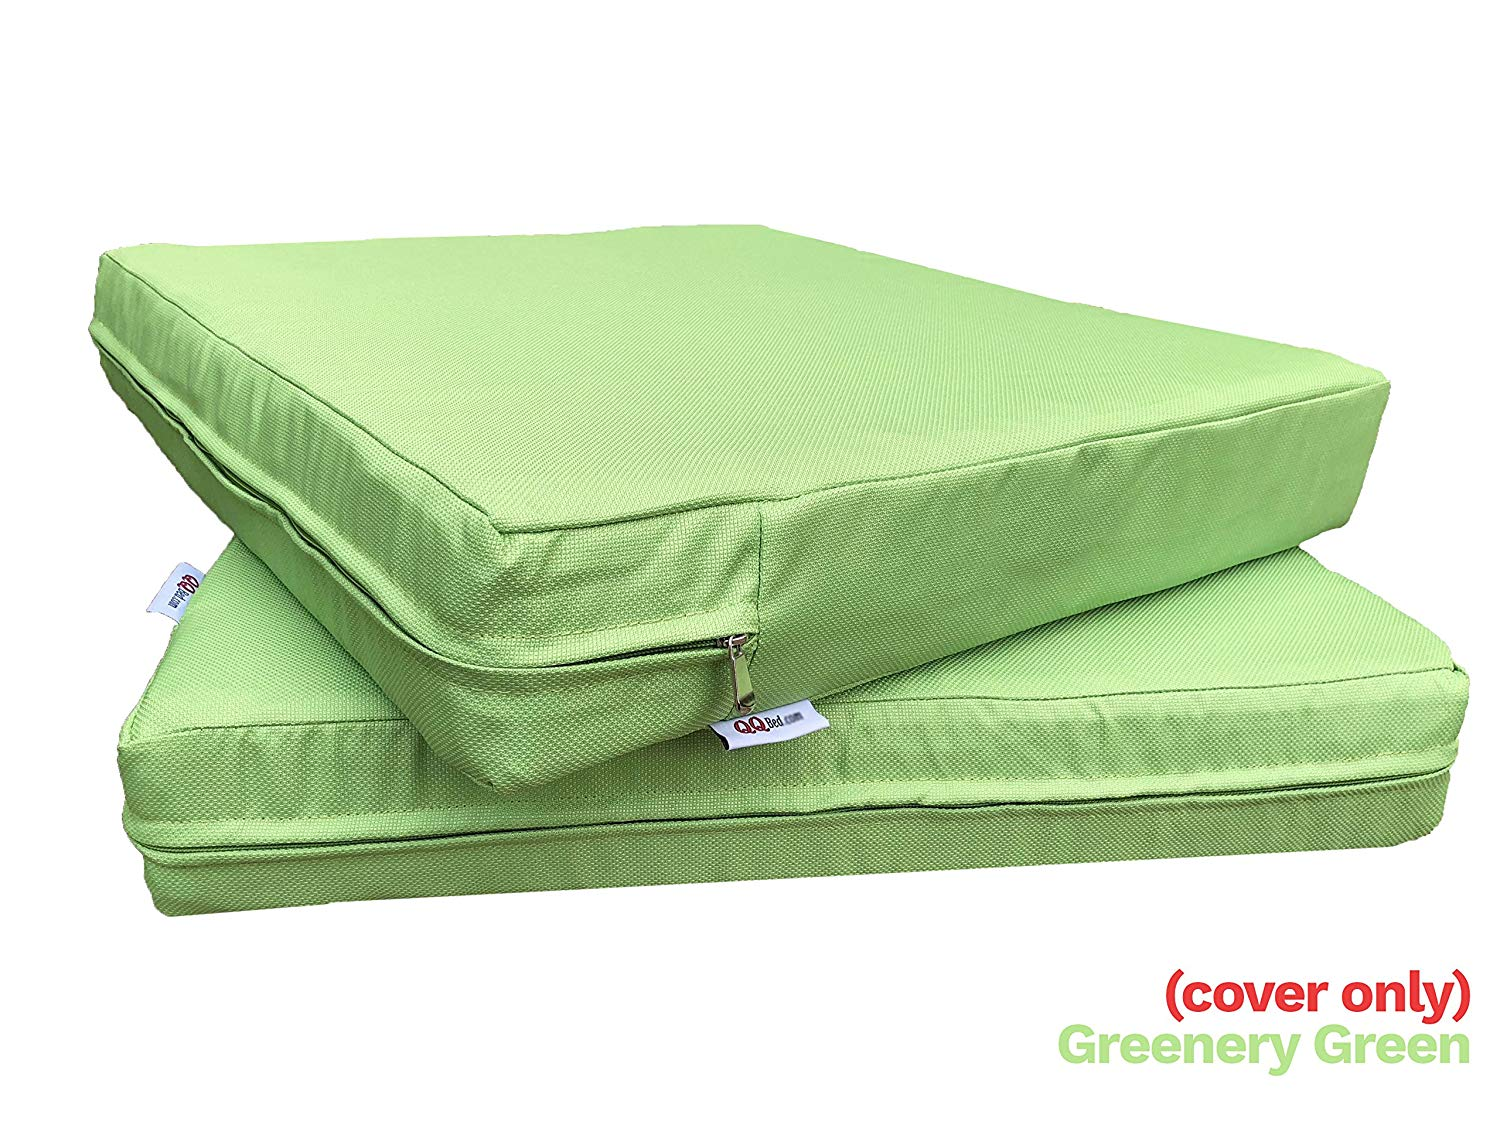 """QQbed 4 Pack Outdoor Patio Chair Washable Cushion Pillow Seat Covers 20"""" X 18"""" - Replacement Covers Only, X4 Greenery Green"""